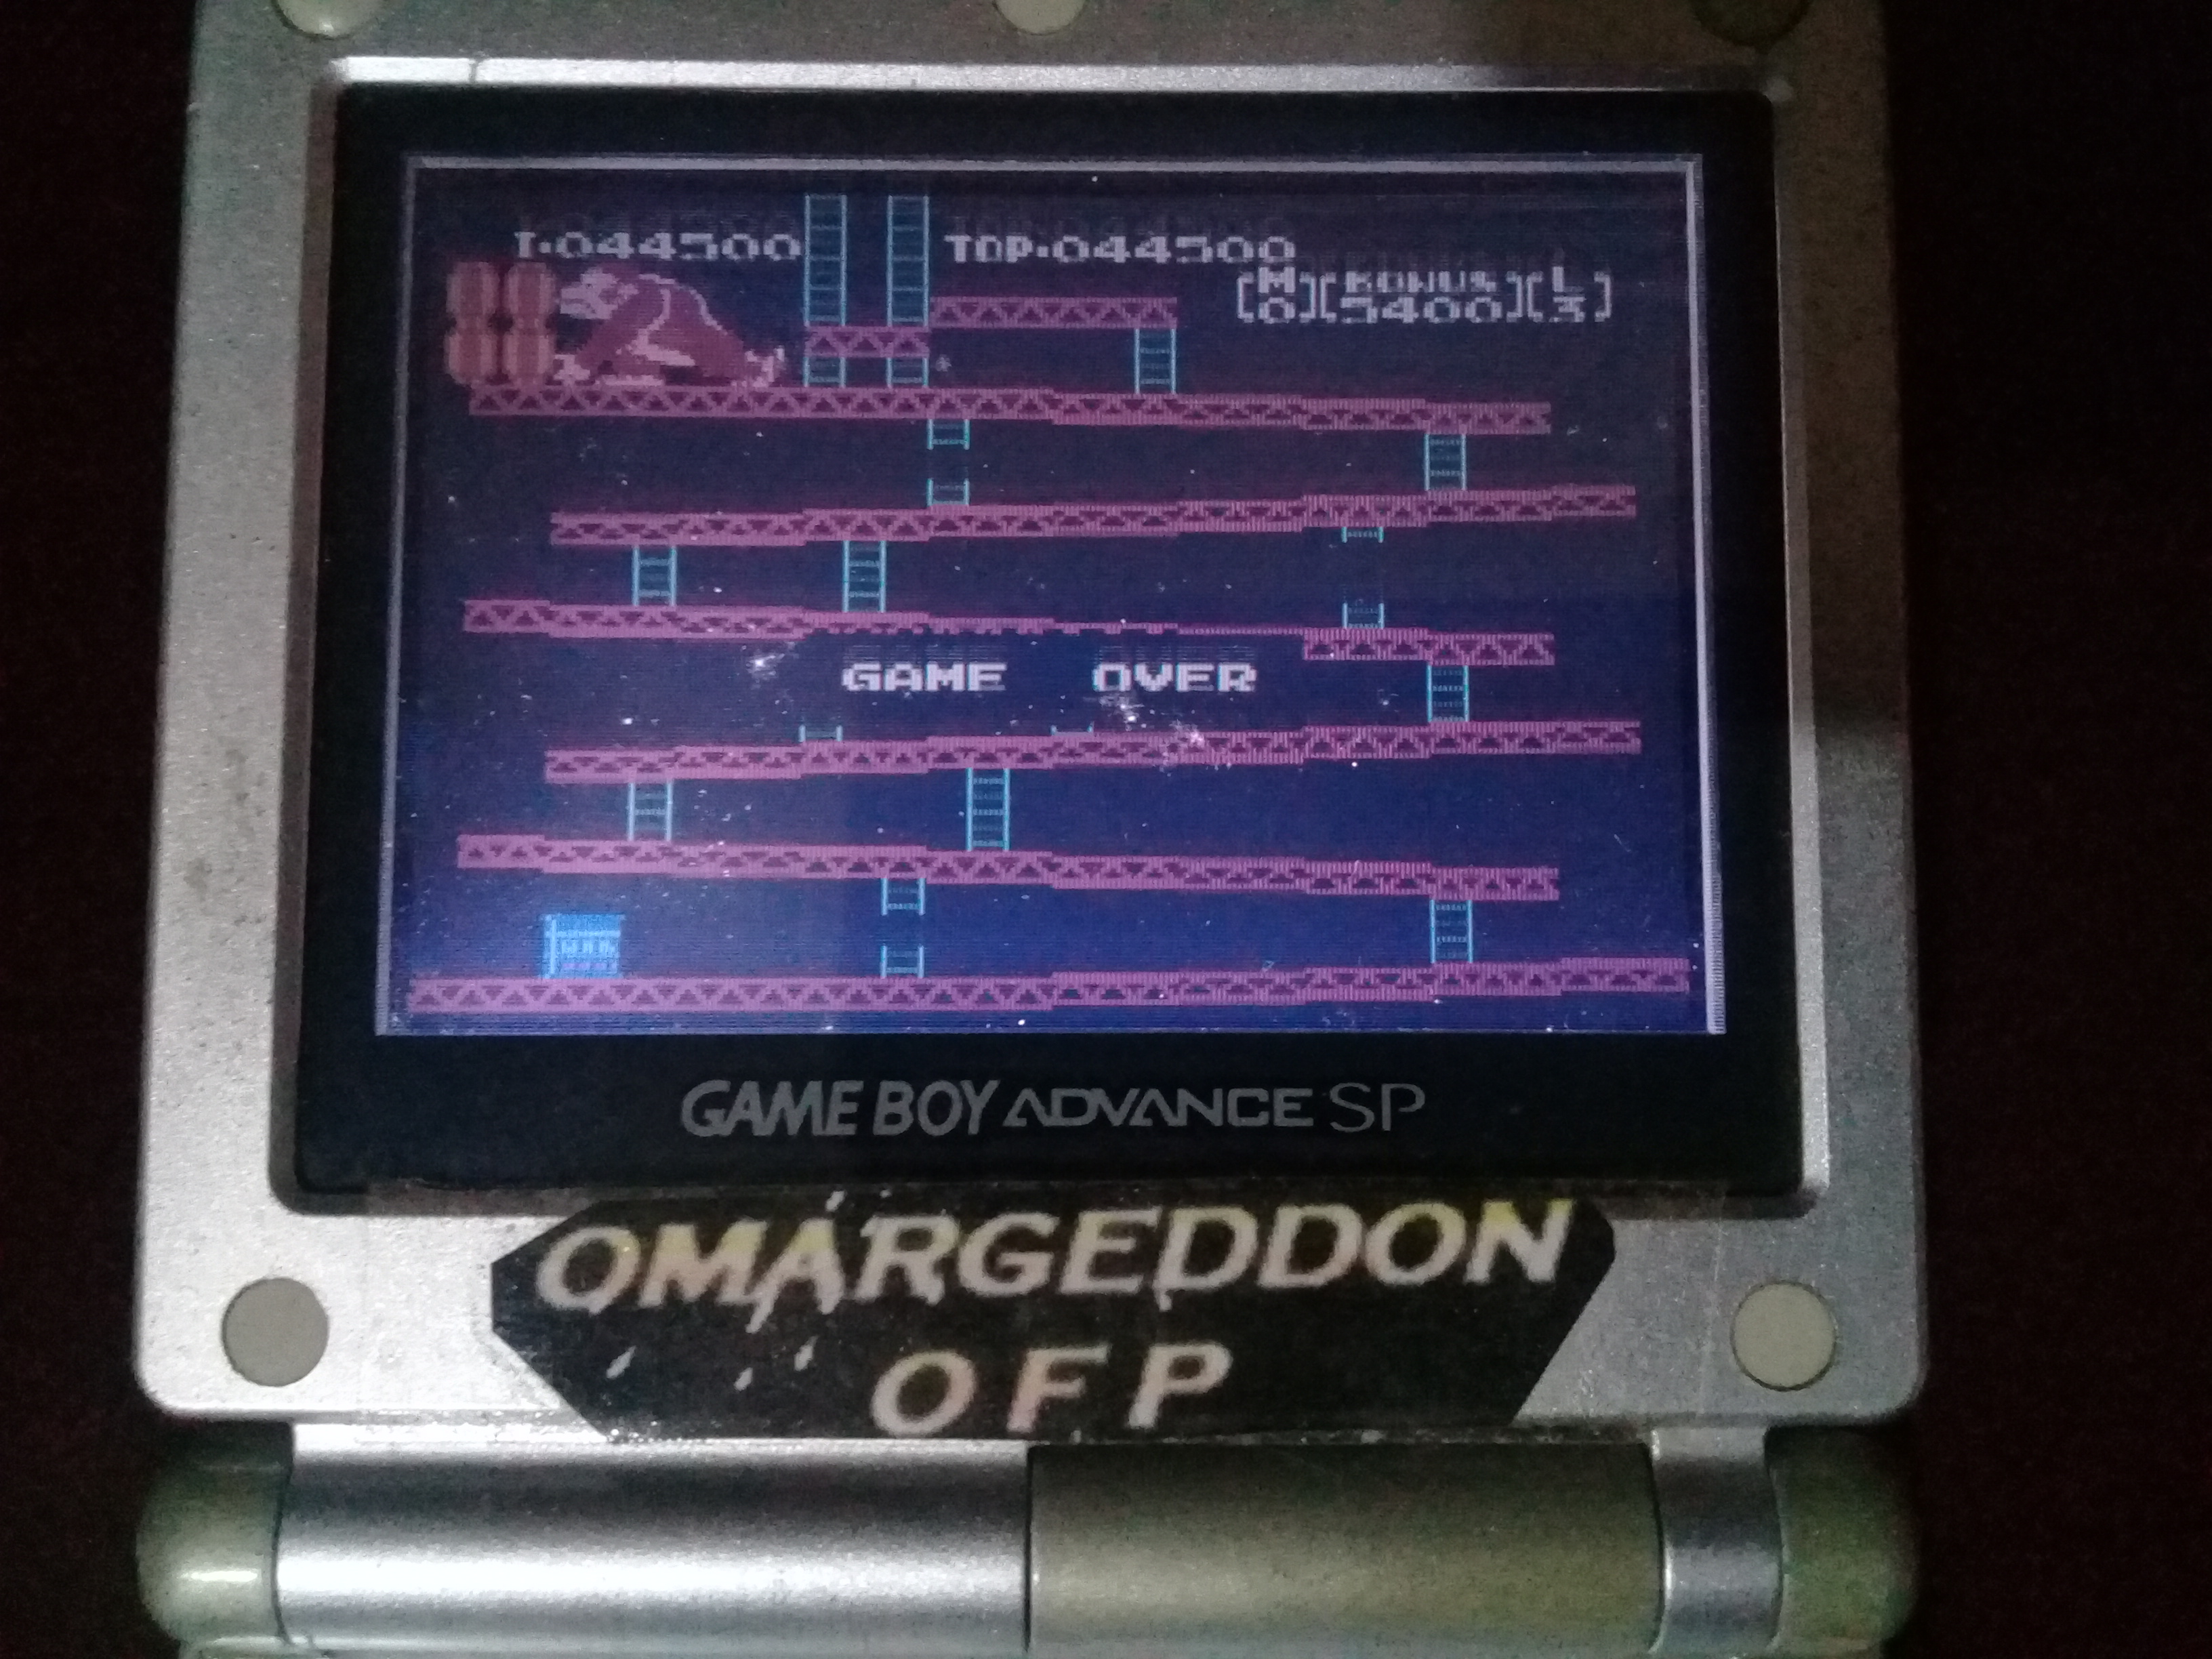 omargeddon: Famicom Mini: Vol. 2: Donkey Kong [Game B] (GBA) 44,500 points on 2020-07-12 13:12:26